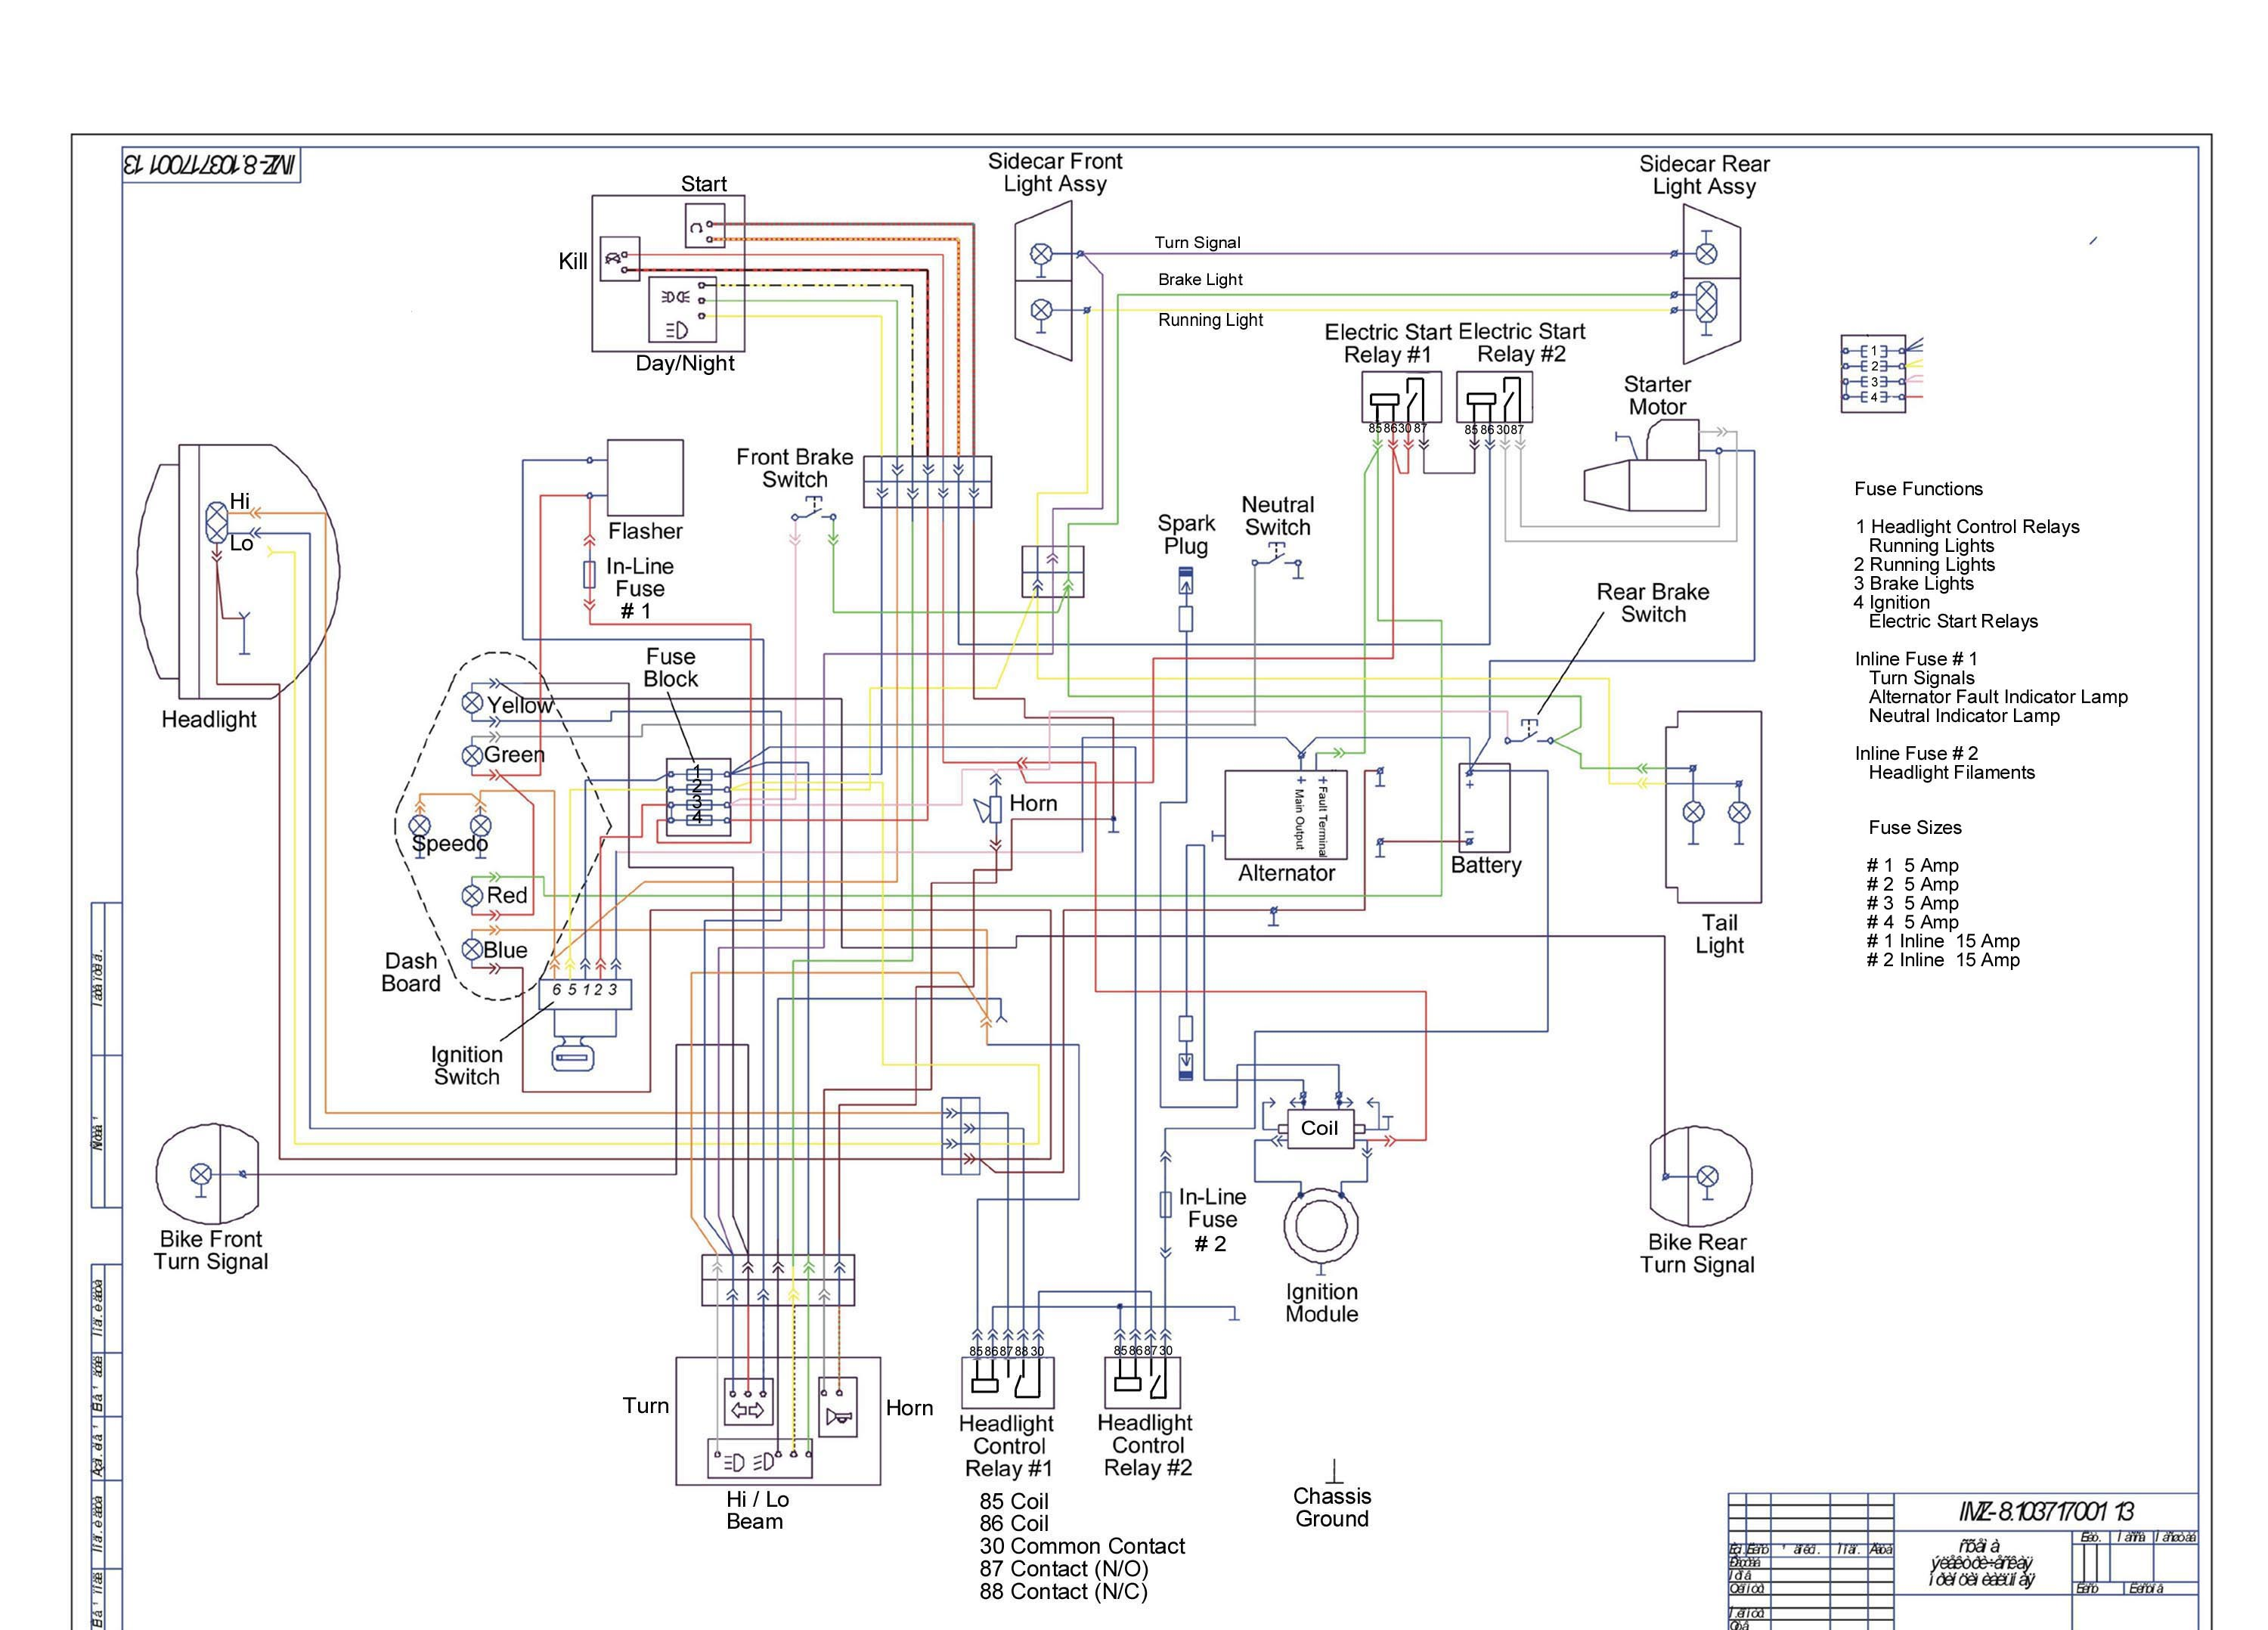 2010 Ural Wiring Diagram 2010 Wiring Diagrams Projects – Royal Enfield Wiring Diagram